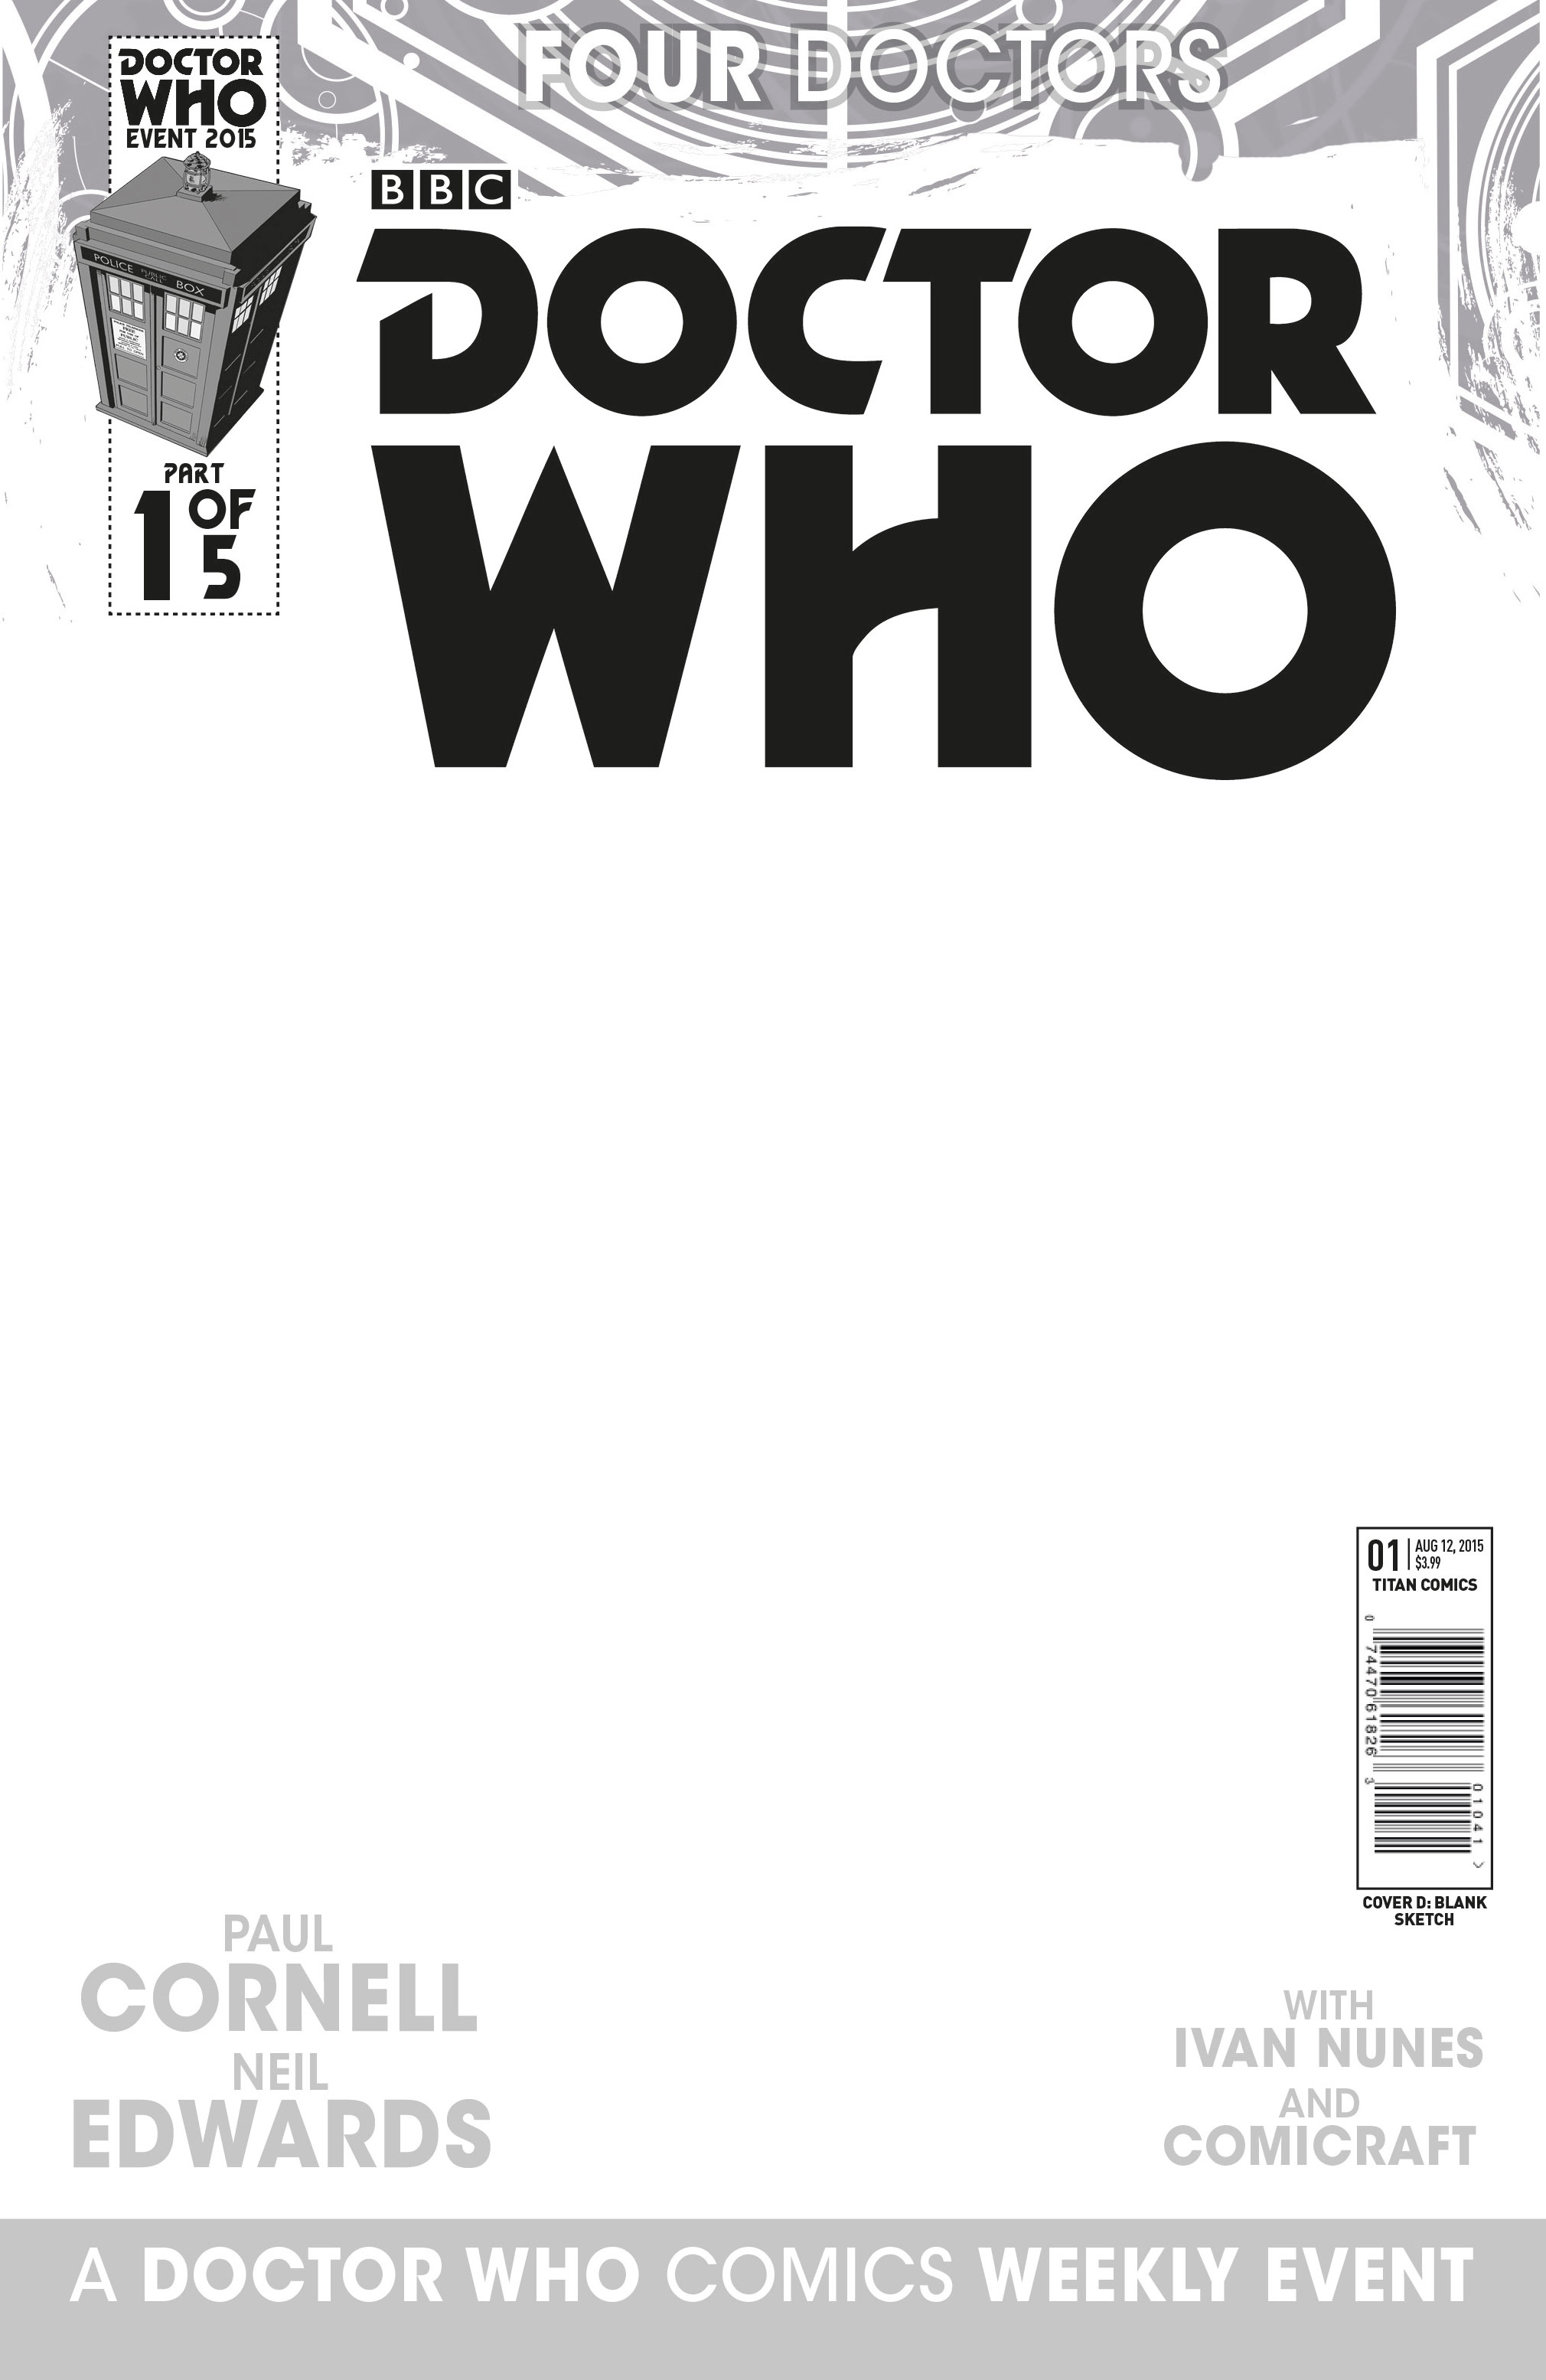 BLANK SKETCH VARIANT COVER